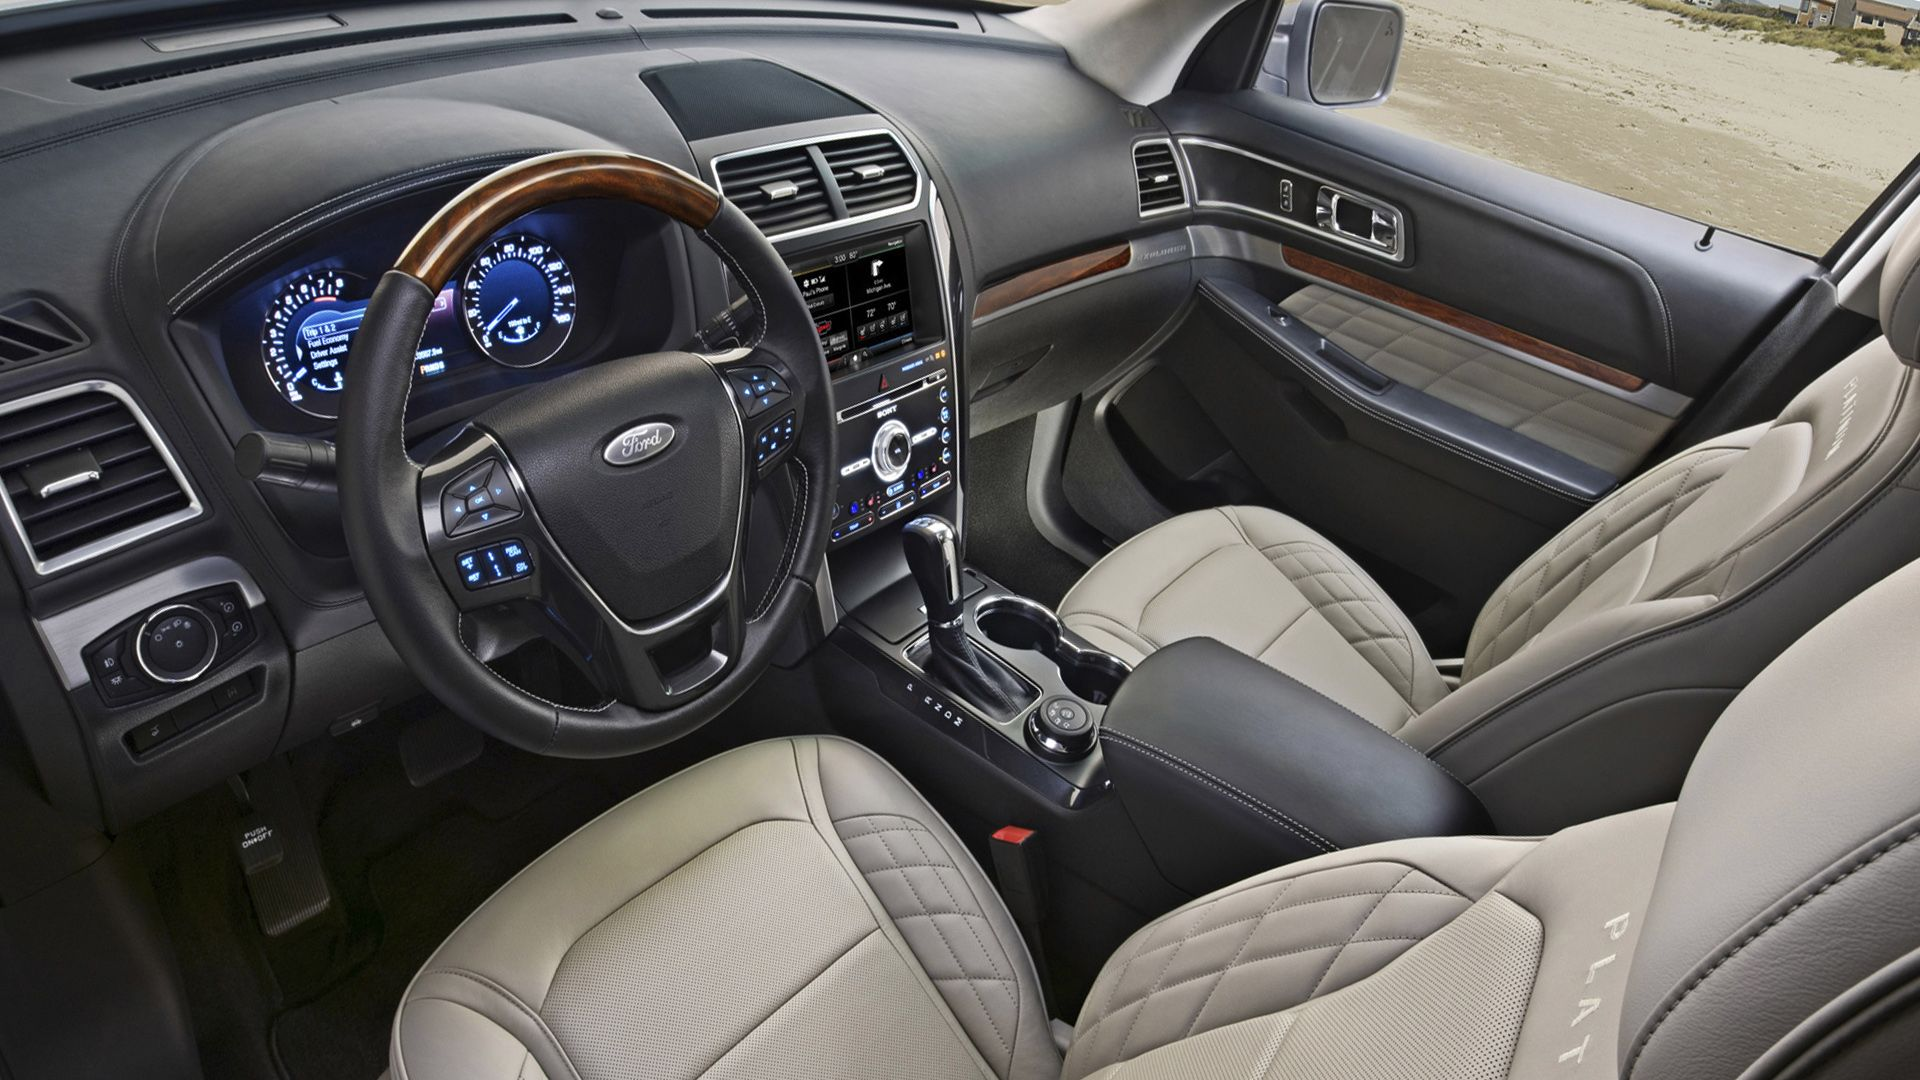 2019 Ford Explorer Interior Design Ford Explorer Interior 2019 Ford Explorer Ford Explorer